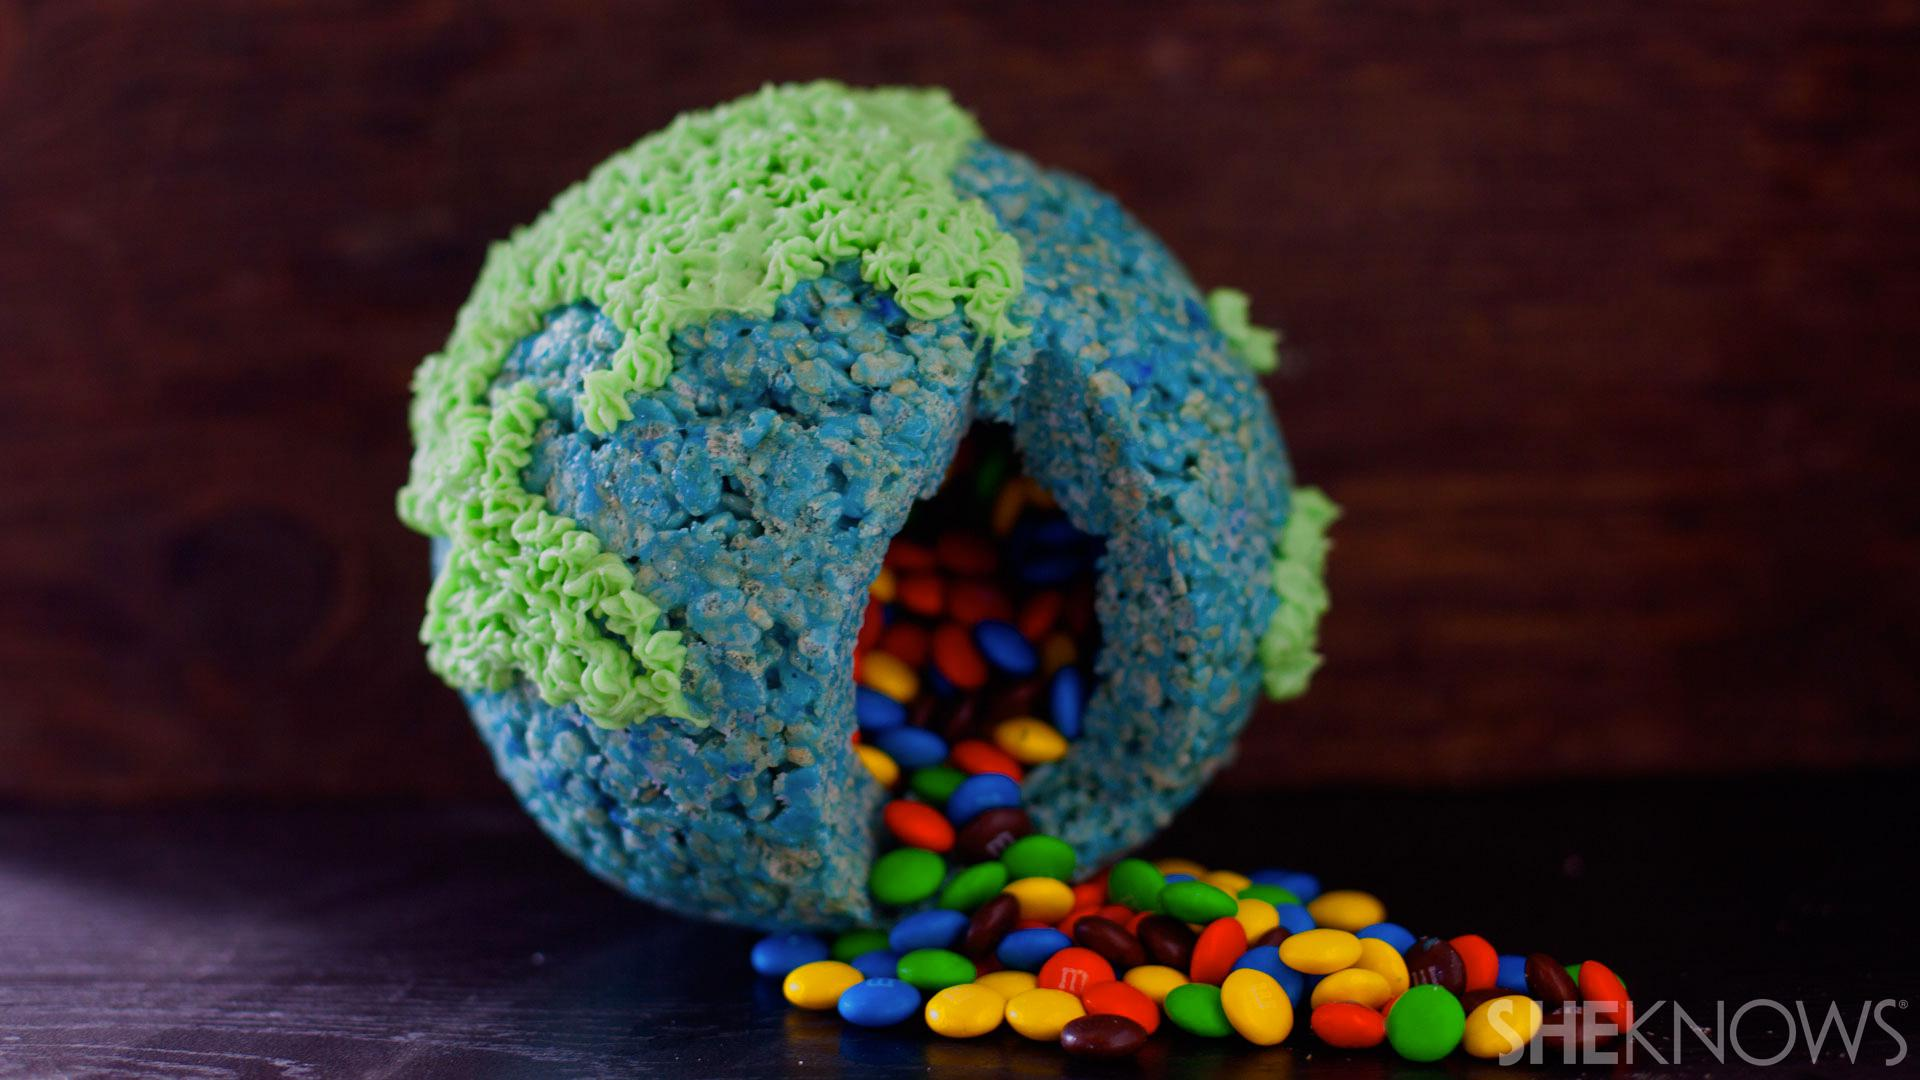 A Candy Filled Rice Krispies Treat Thats Out Of This World Sheknows